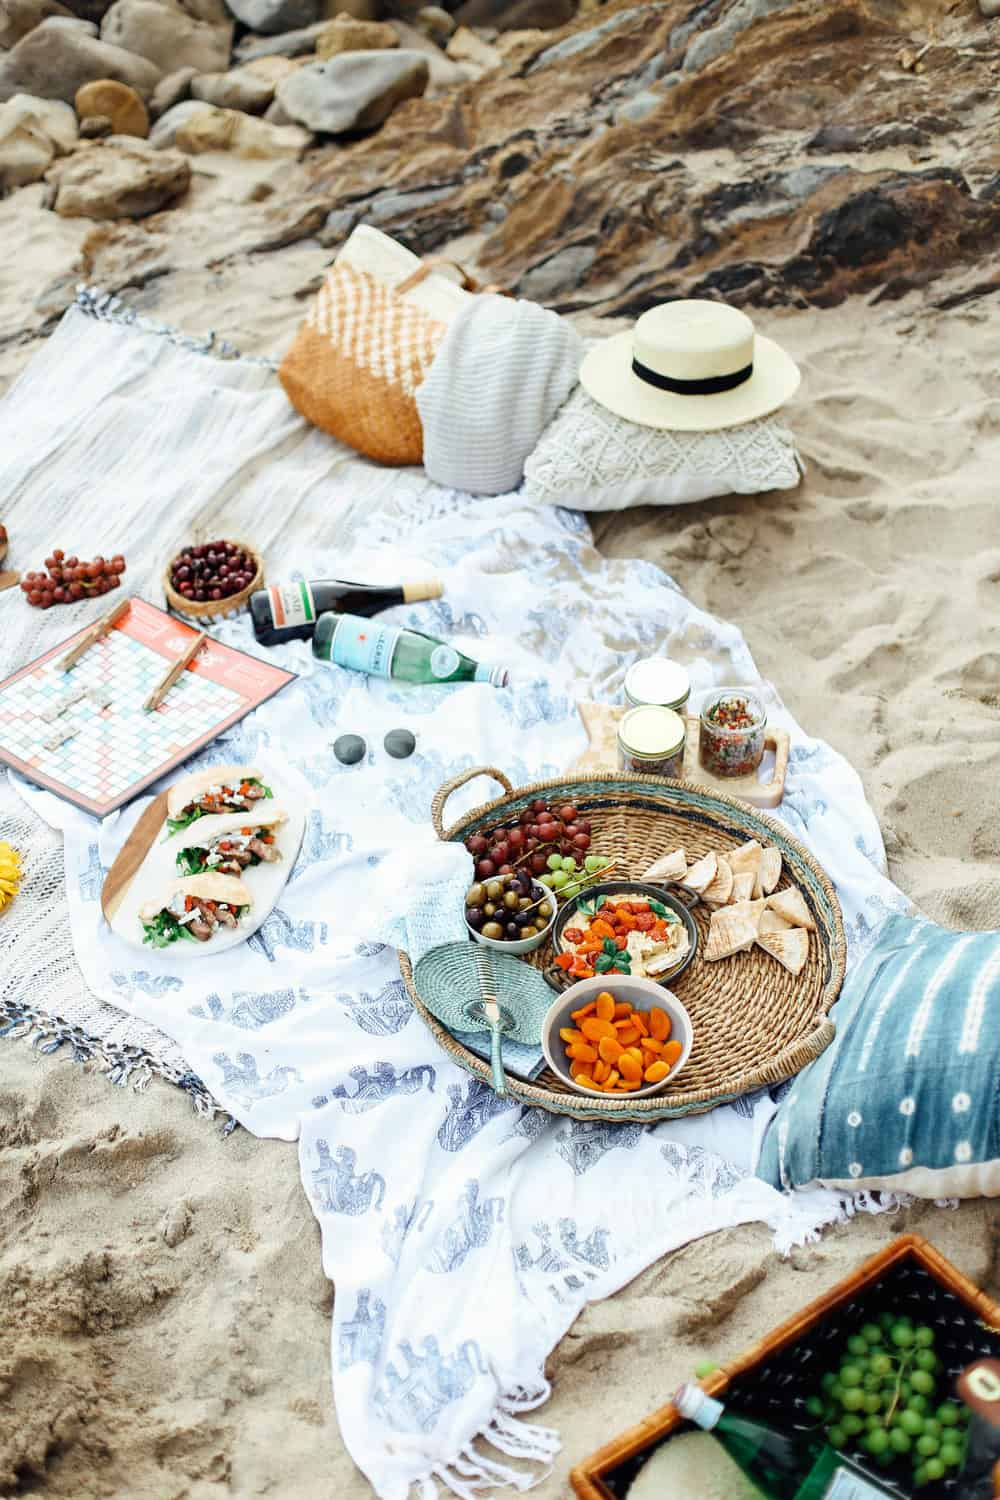 Mediterranean Beach Picnic food and drinks in a wicker basket on beach towels at the beach